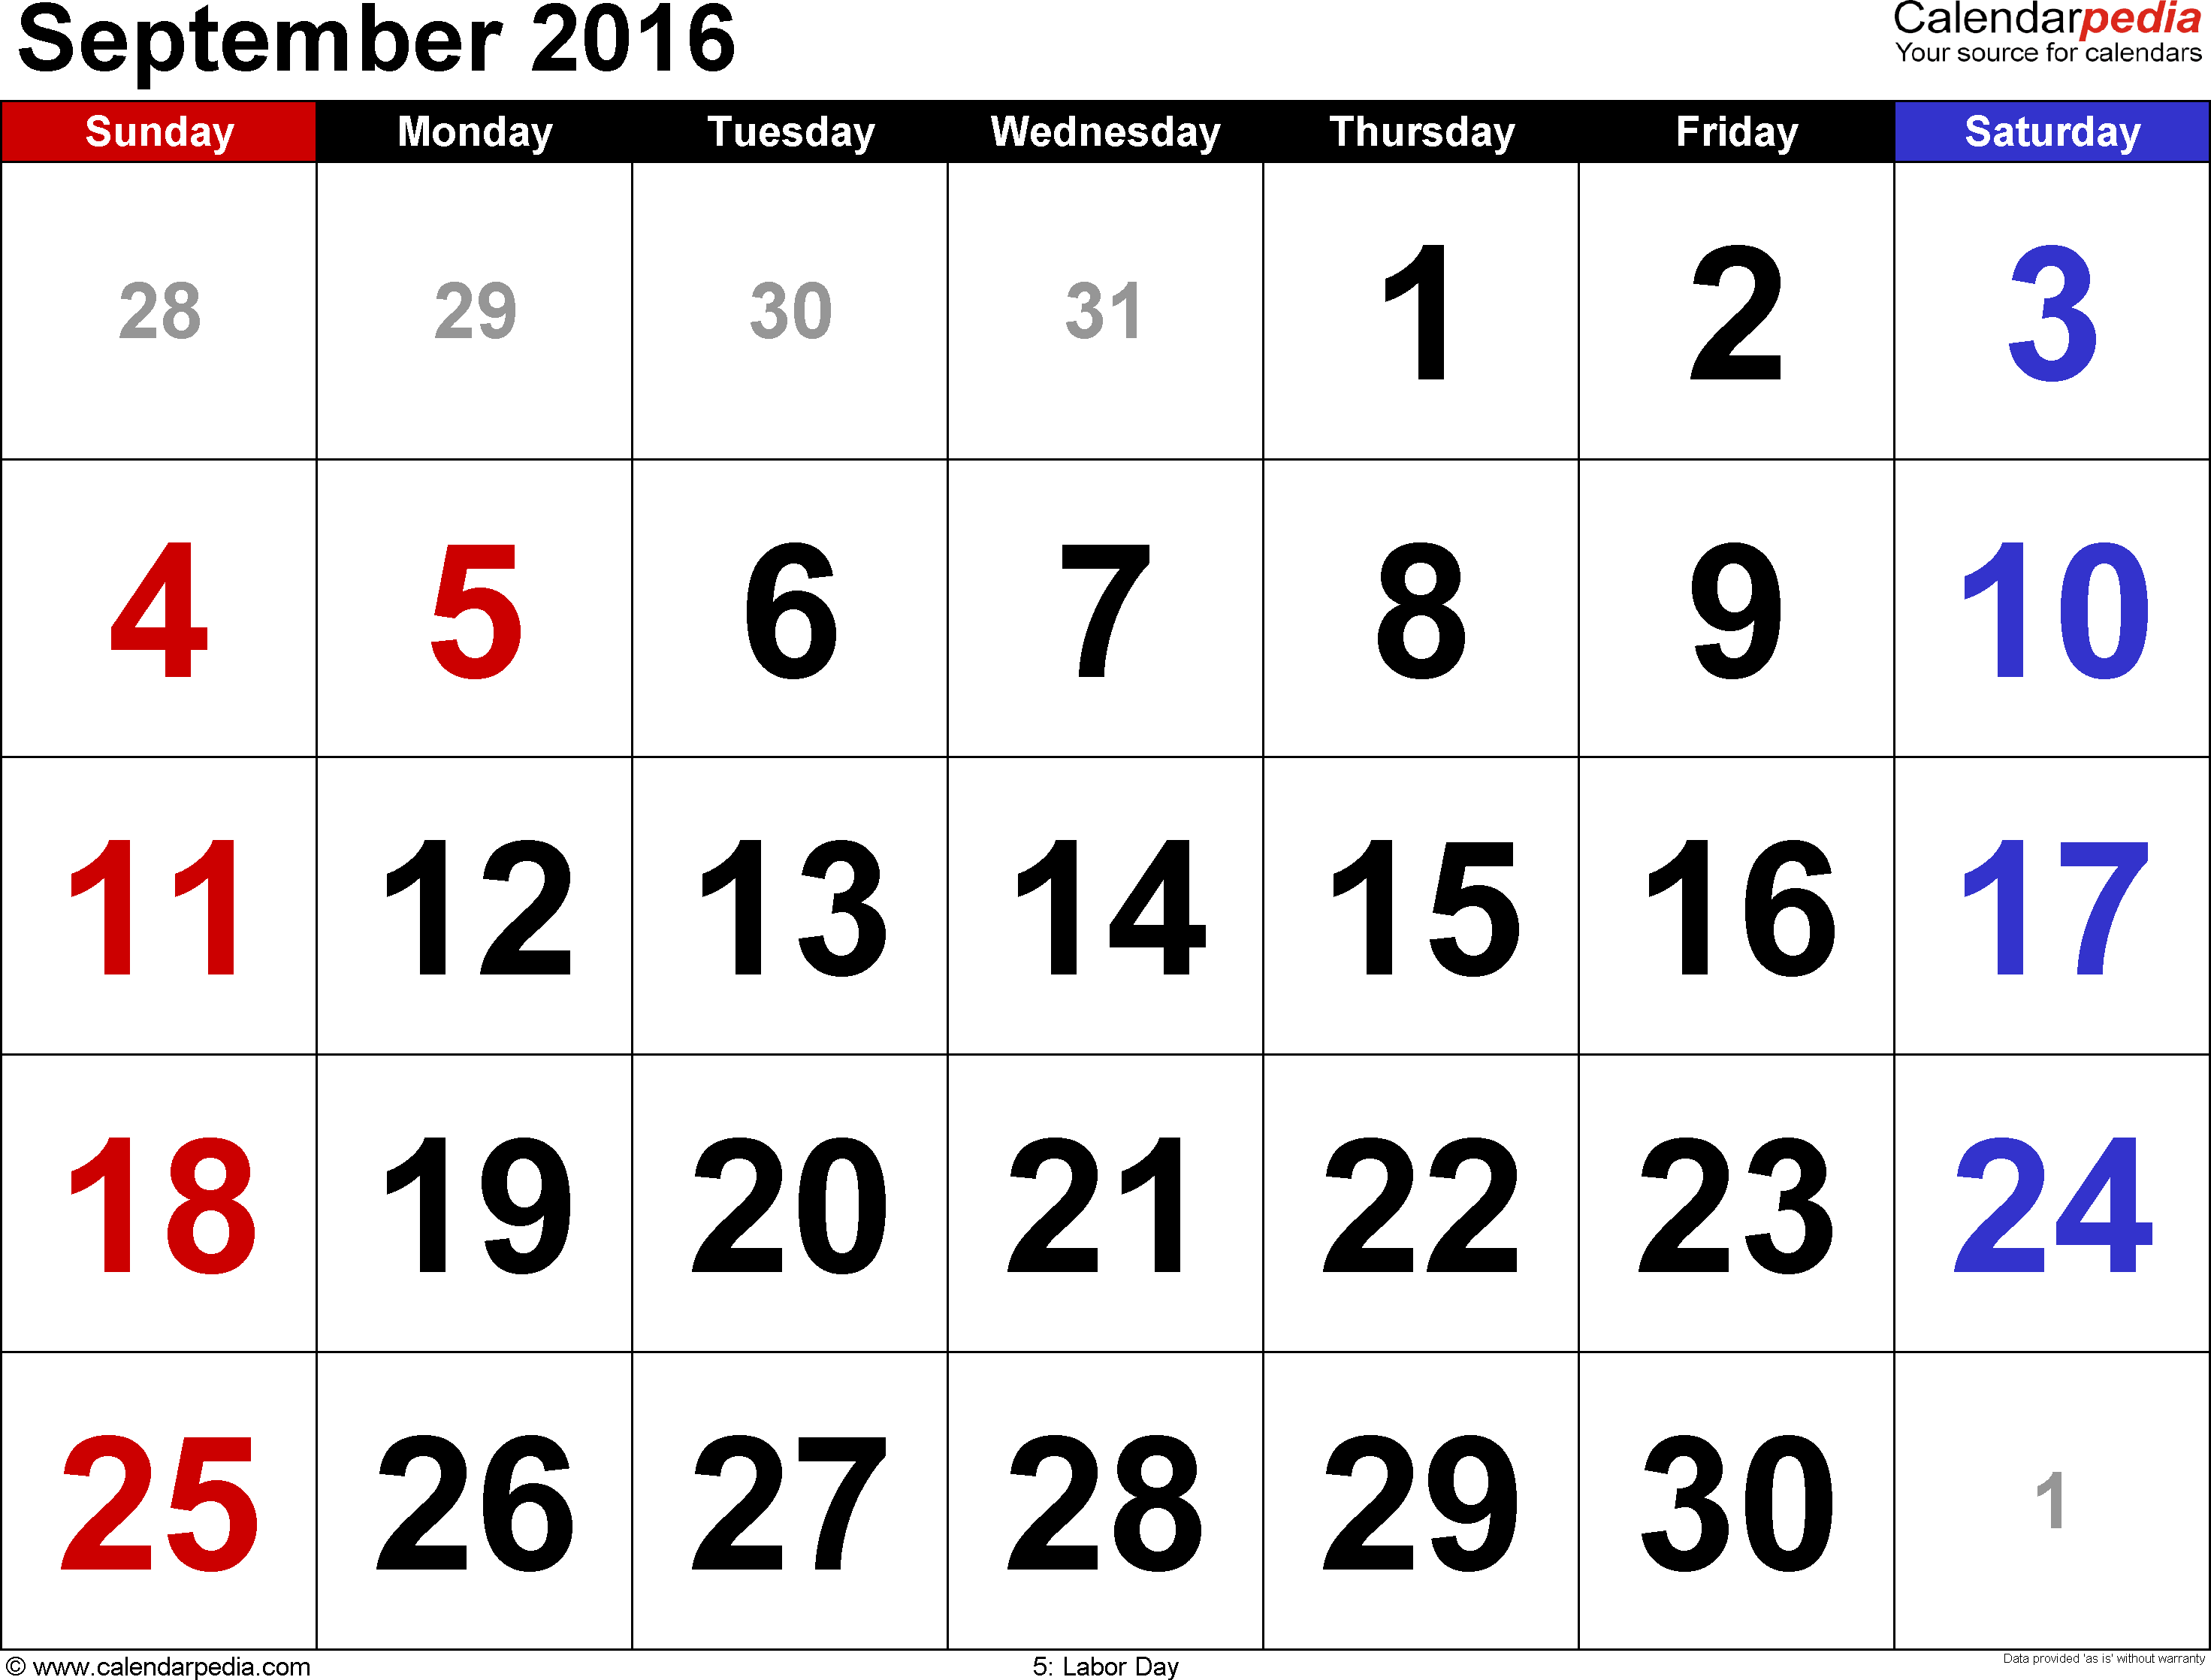 September 2016 calendar, landscape orientation, large numerals, available as printable templates for Word, Excel and PDF